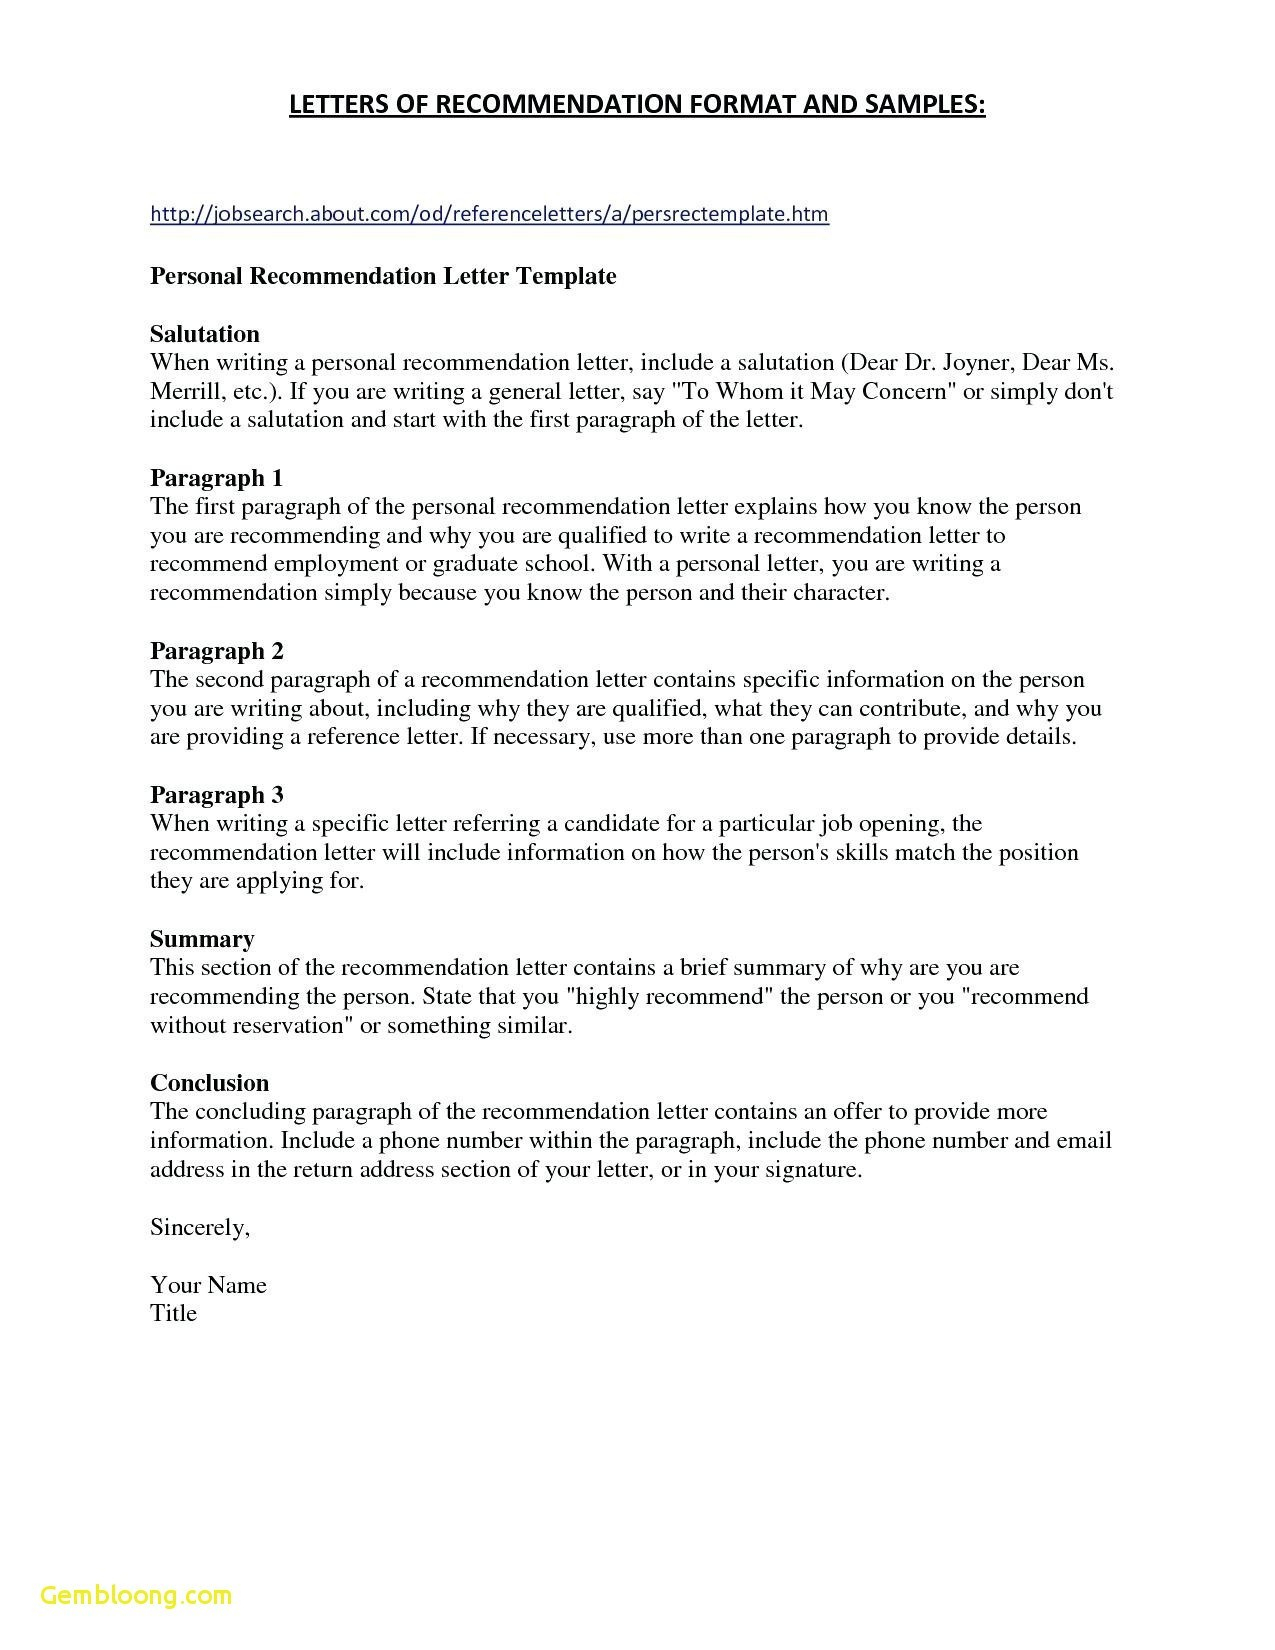 professional reference letter template free example-Job Re mendation Letter Template Best Refrence format Job Reference Letter 1-k